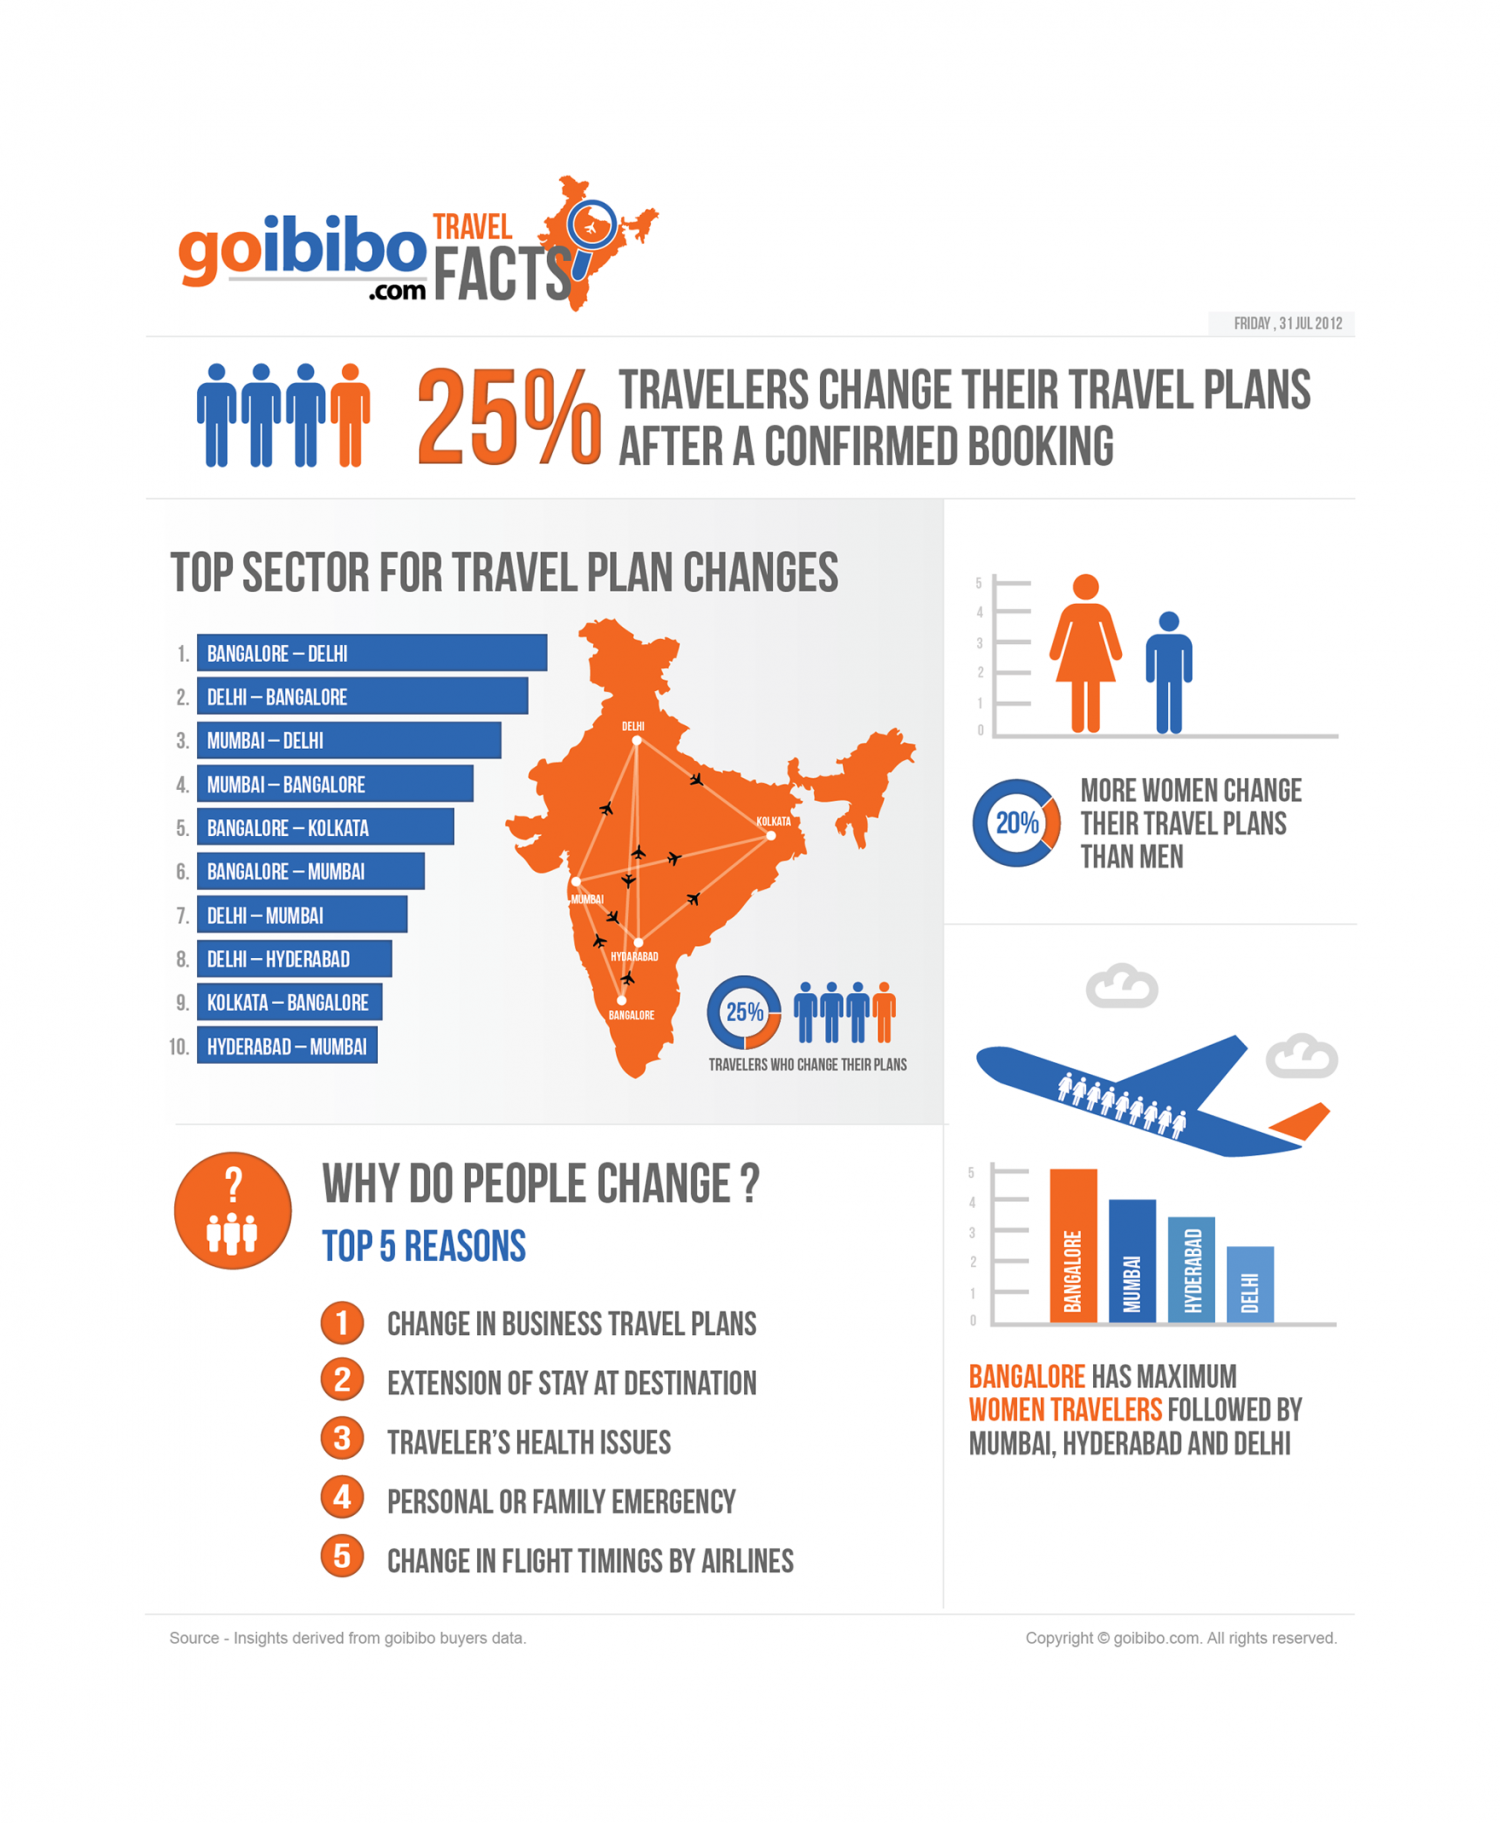 goibibo travel facts Infographic